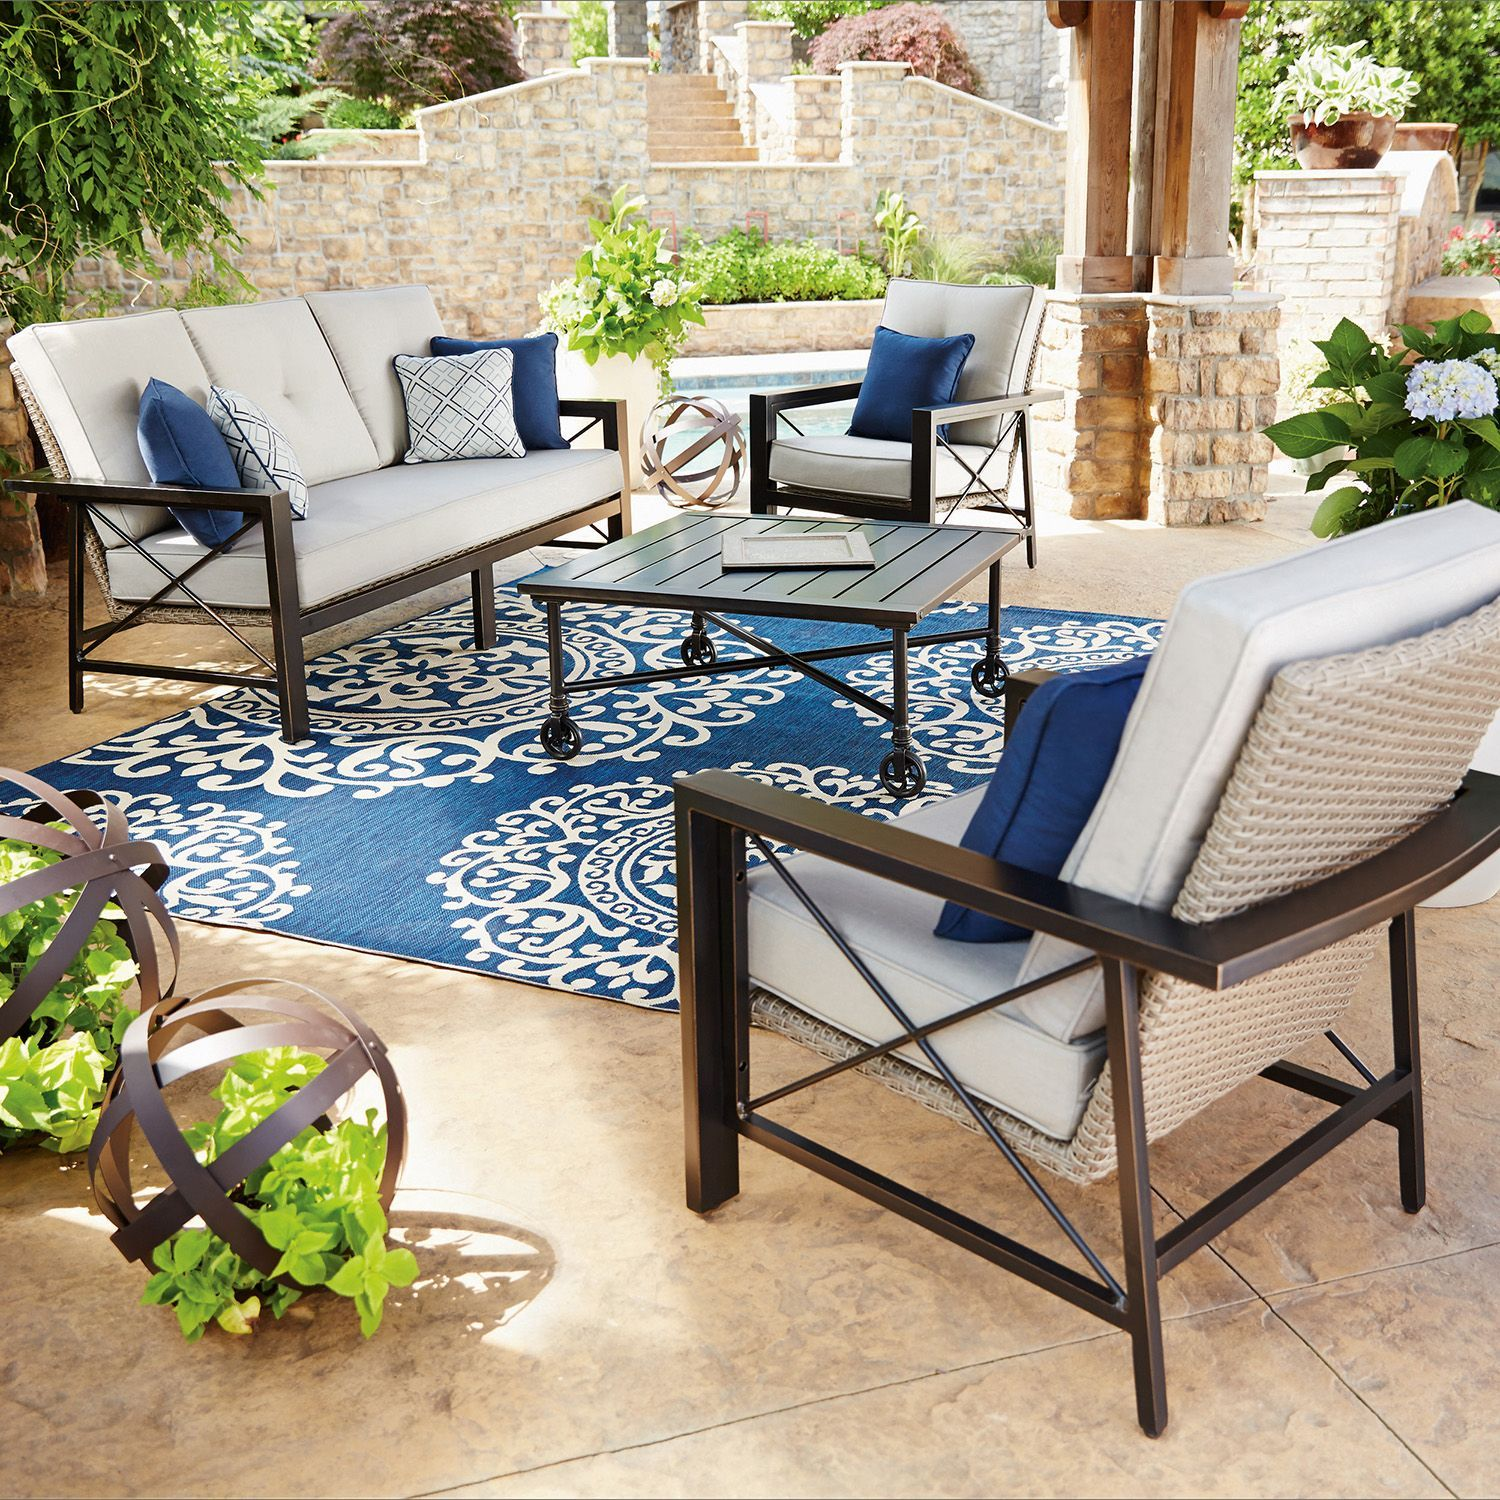 Buy Member's Mark Katana 4-Piece Seating Set : Foremost Group Outdoor at  SamsClub.com - Member's Mark Katana 4-Piece Seating Set AZ Casa Patio, Outdoor